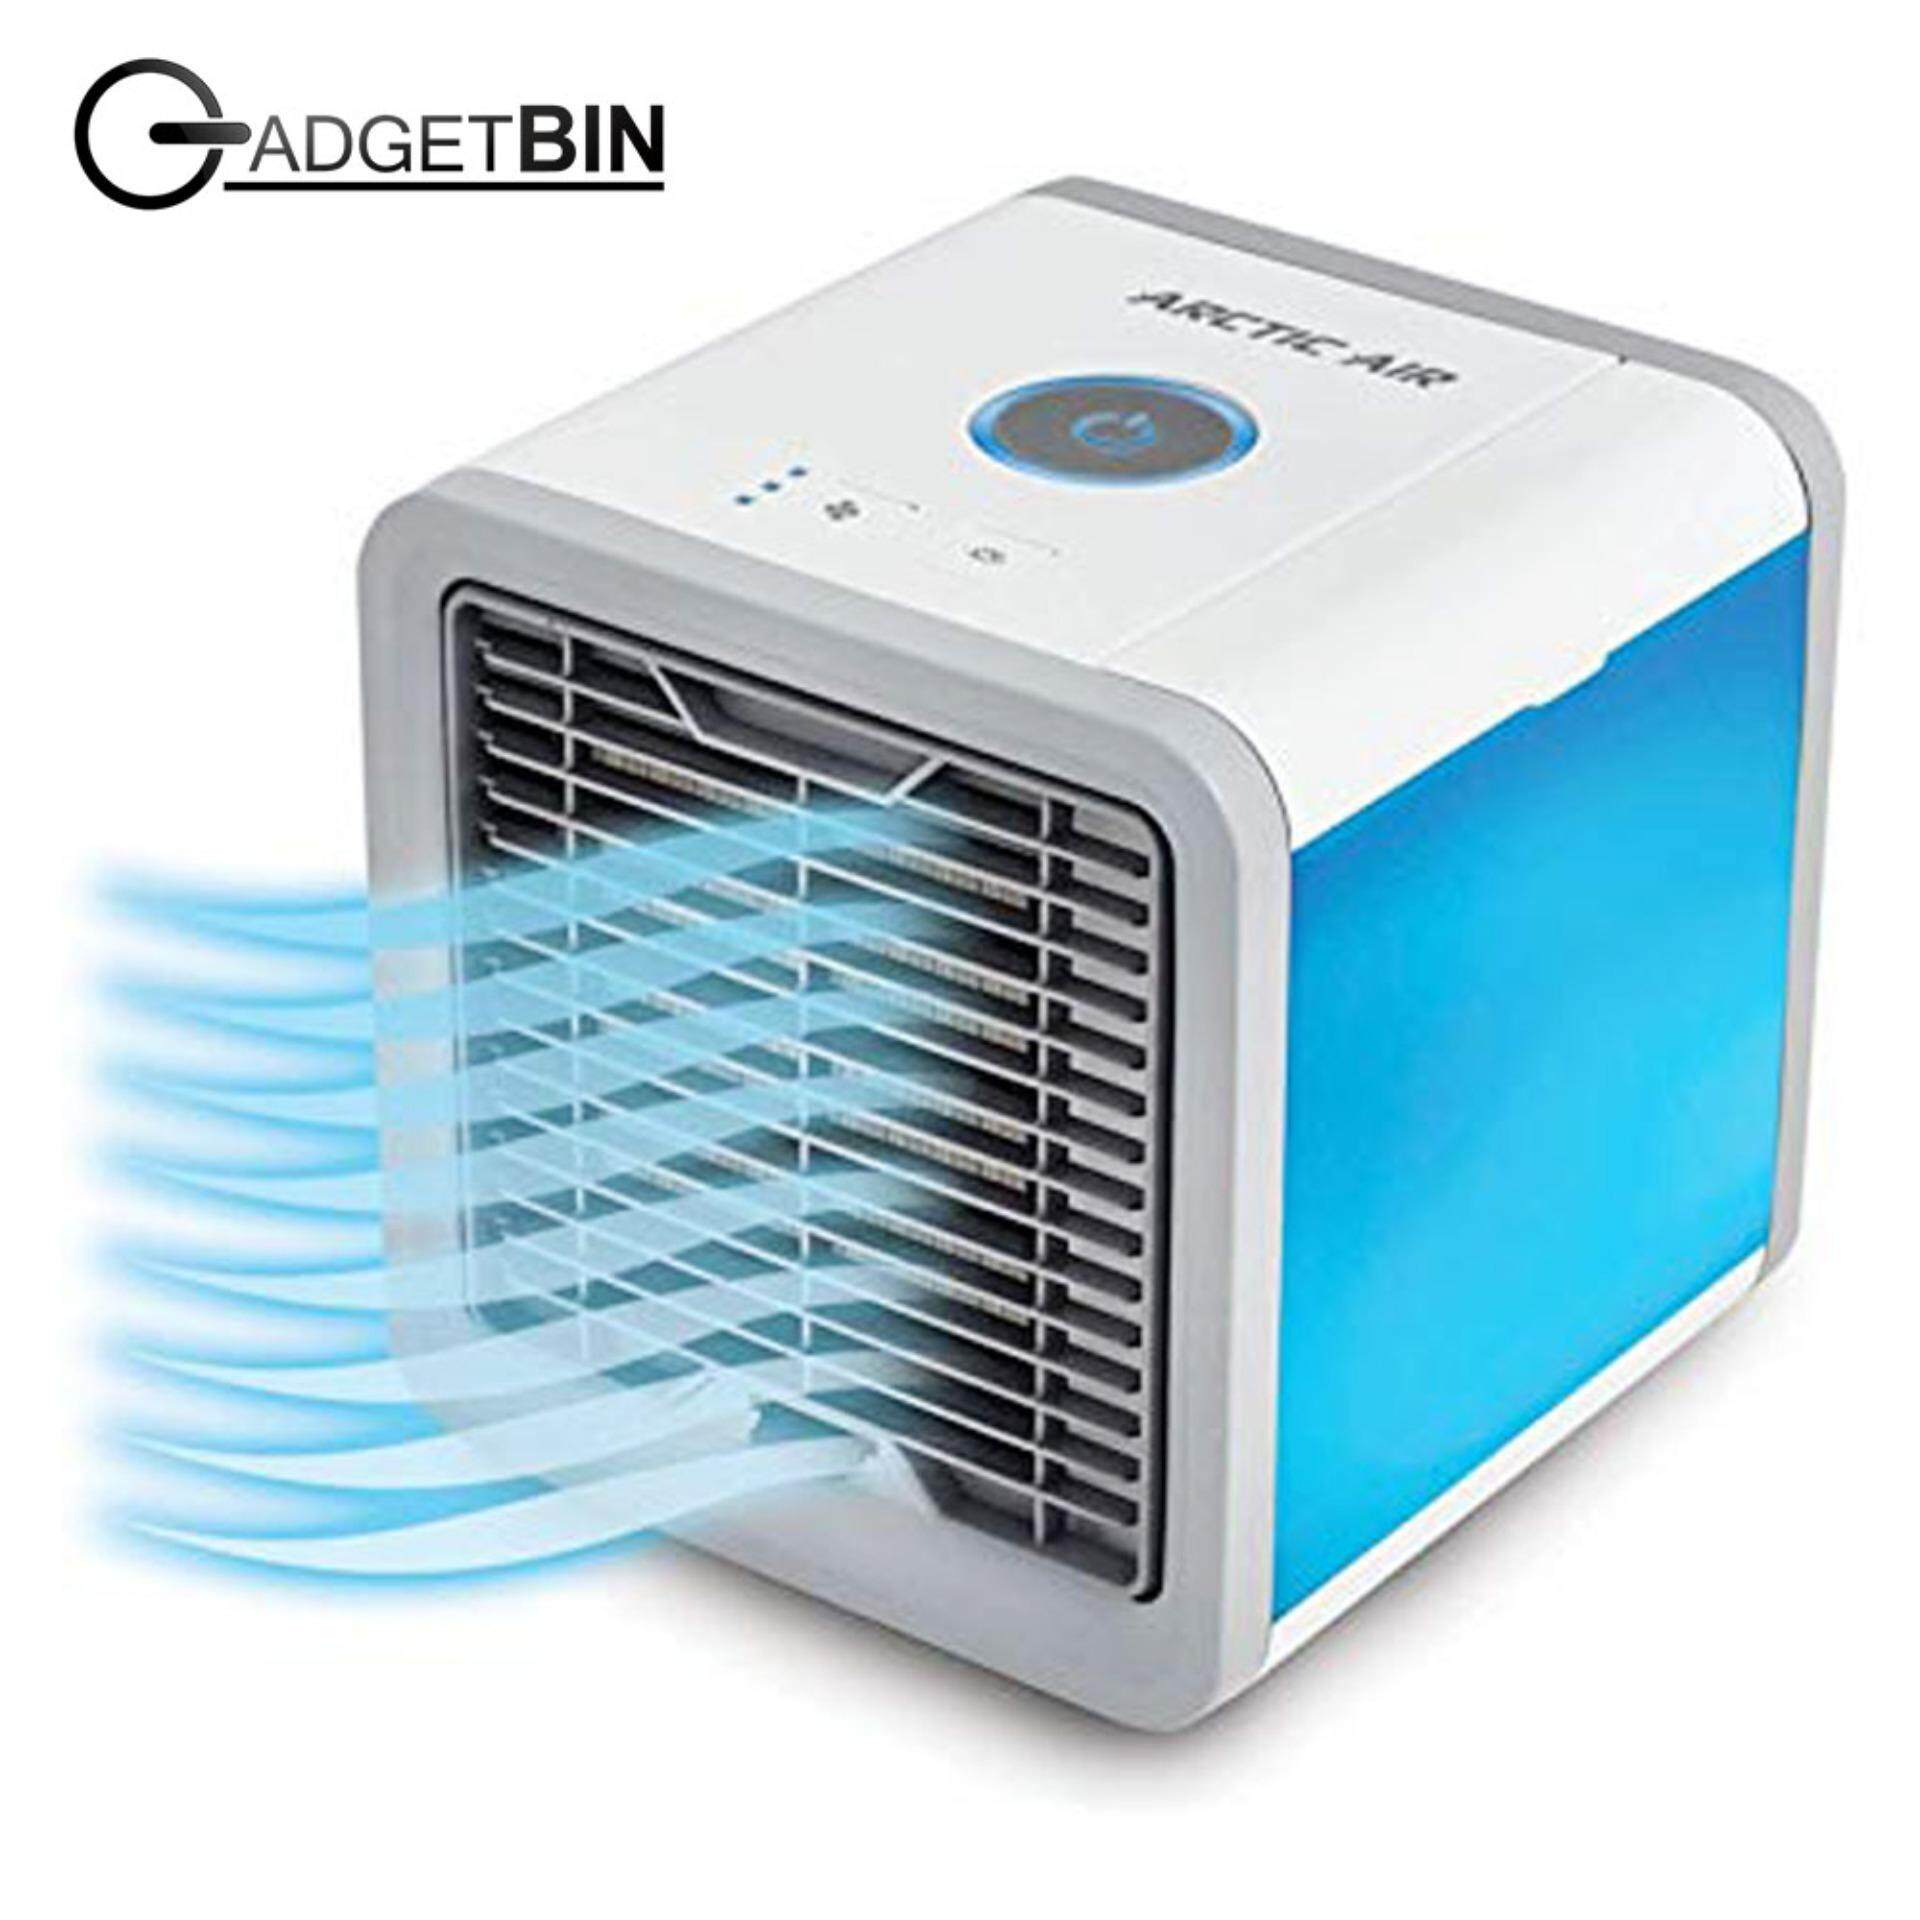 c443825f072d Arctic Air Personal Space Cooler Air Conditioner Humidifier 3 Speed LED  Night Light Air Cooler Fan